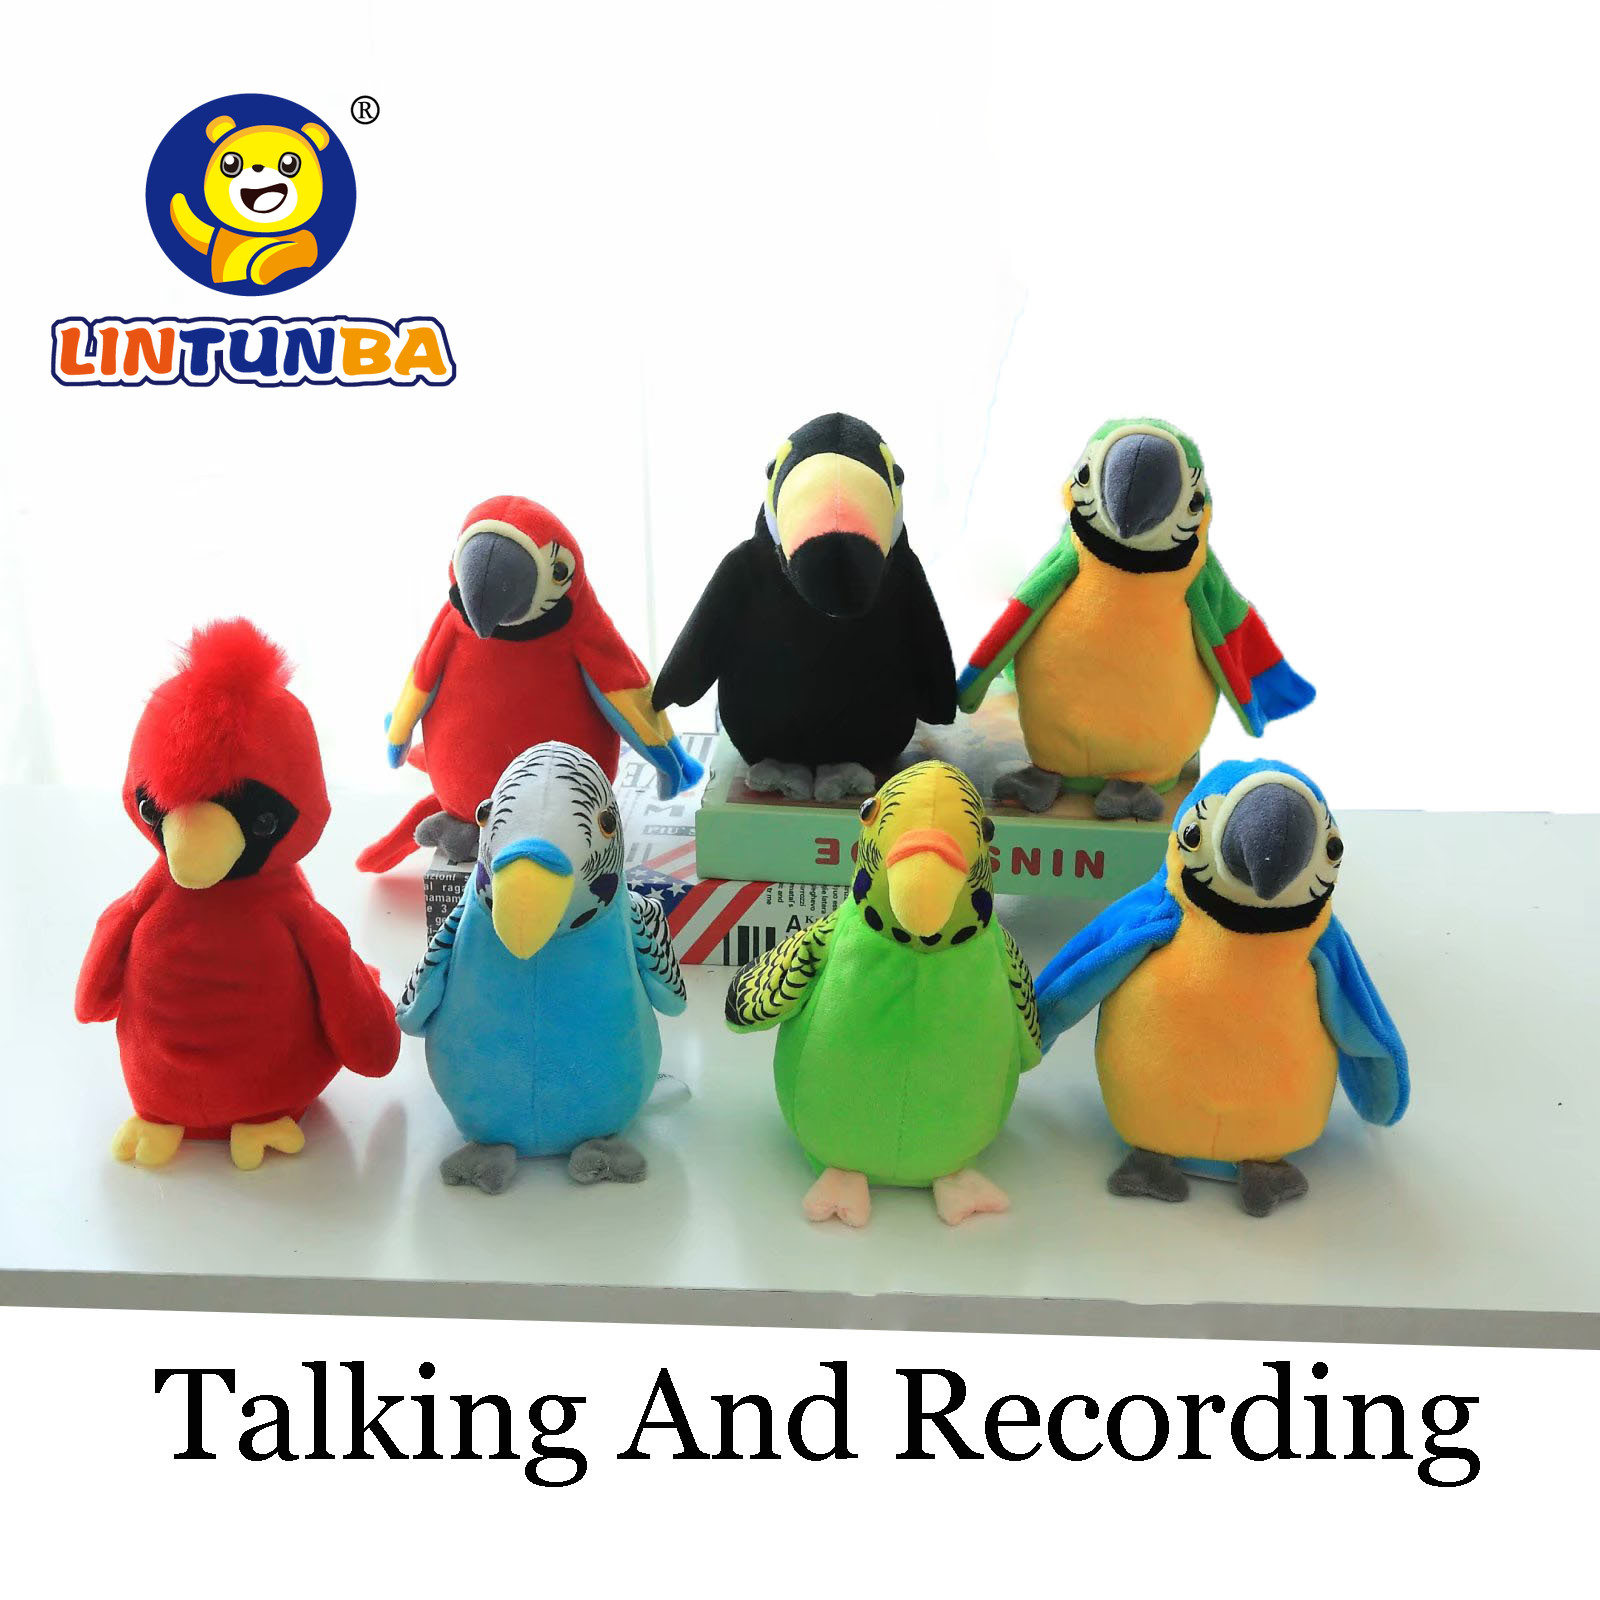 Creative Parrot Cartoon Learning Talking Recording Toys Childrens Puzzle Education Learning Talking Companion GiftCreative Parrot Cartoon Learning Talking Recording Toys Childrens Puzzle Education Learning Talking Companion Gift